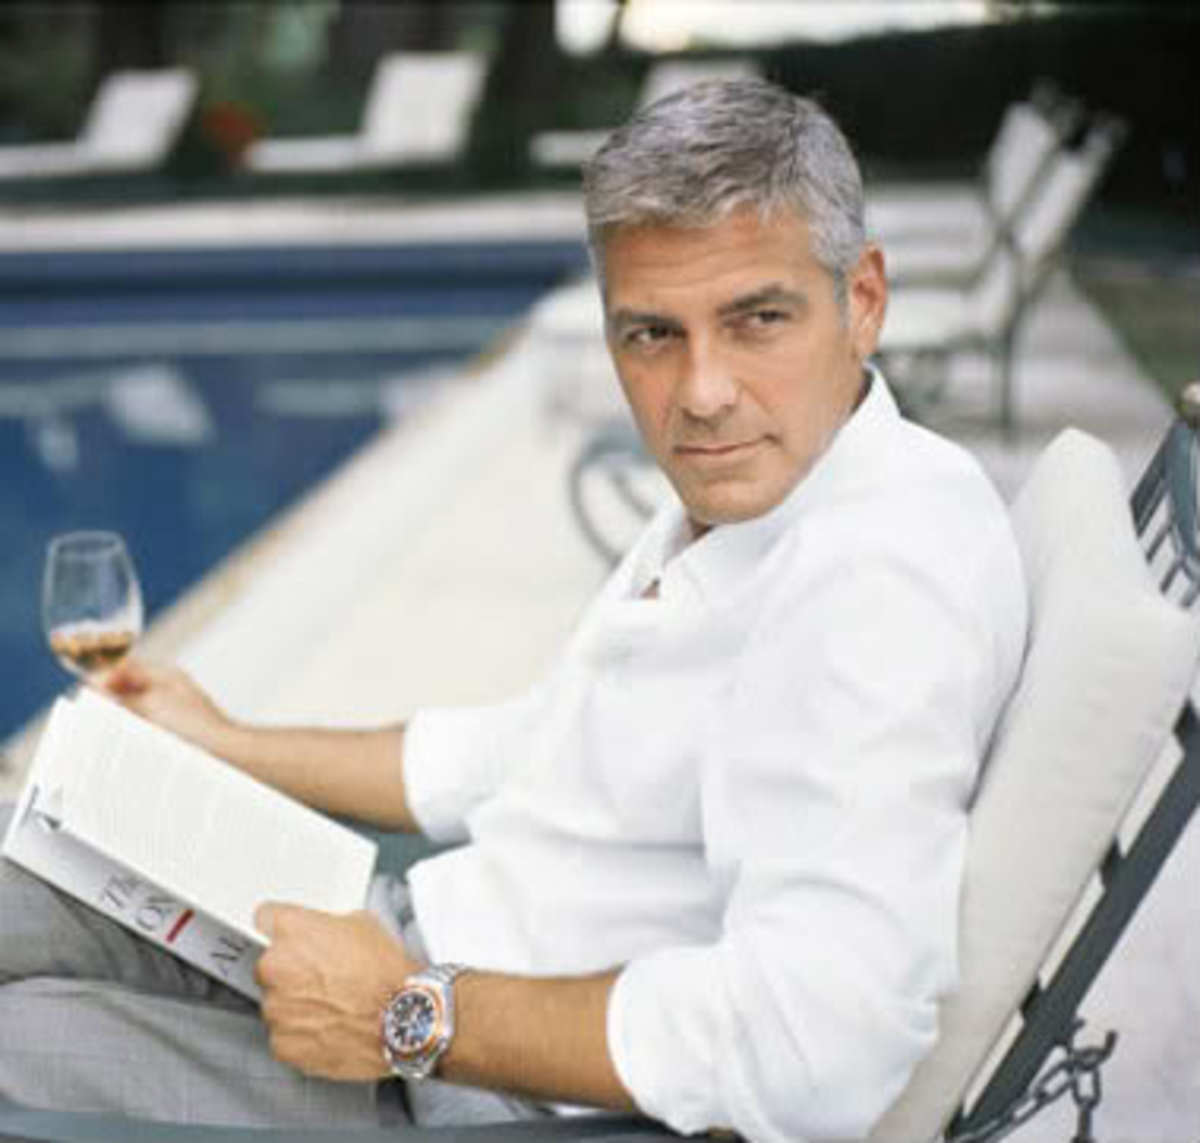 George Clooney in a trend of movie stars making adverts now.